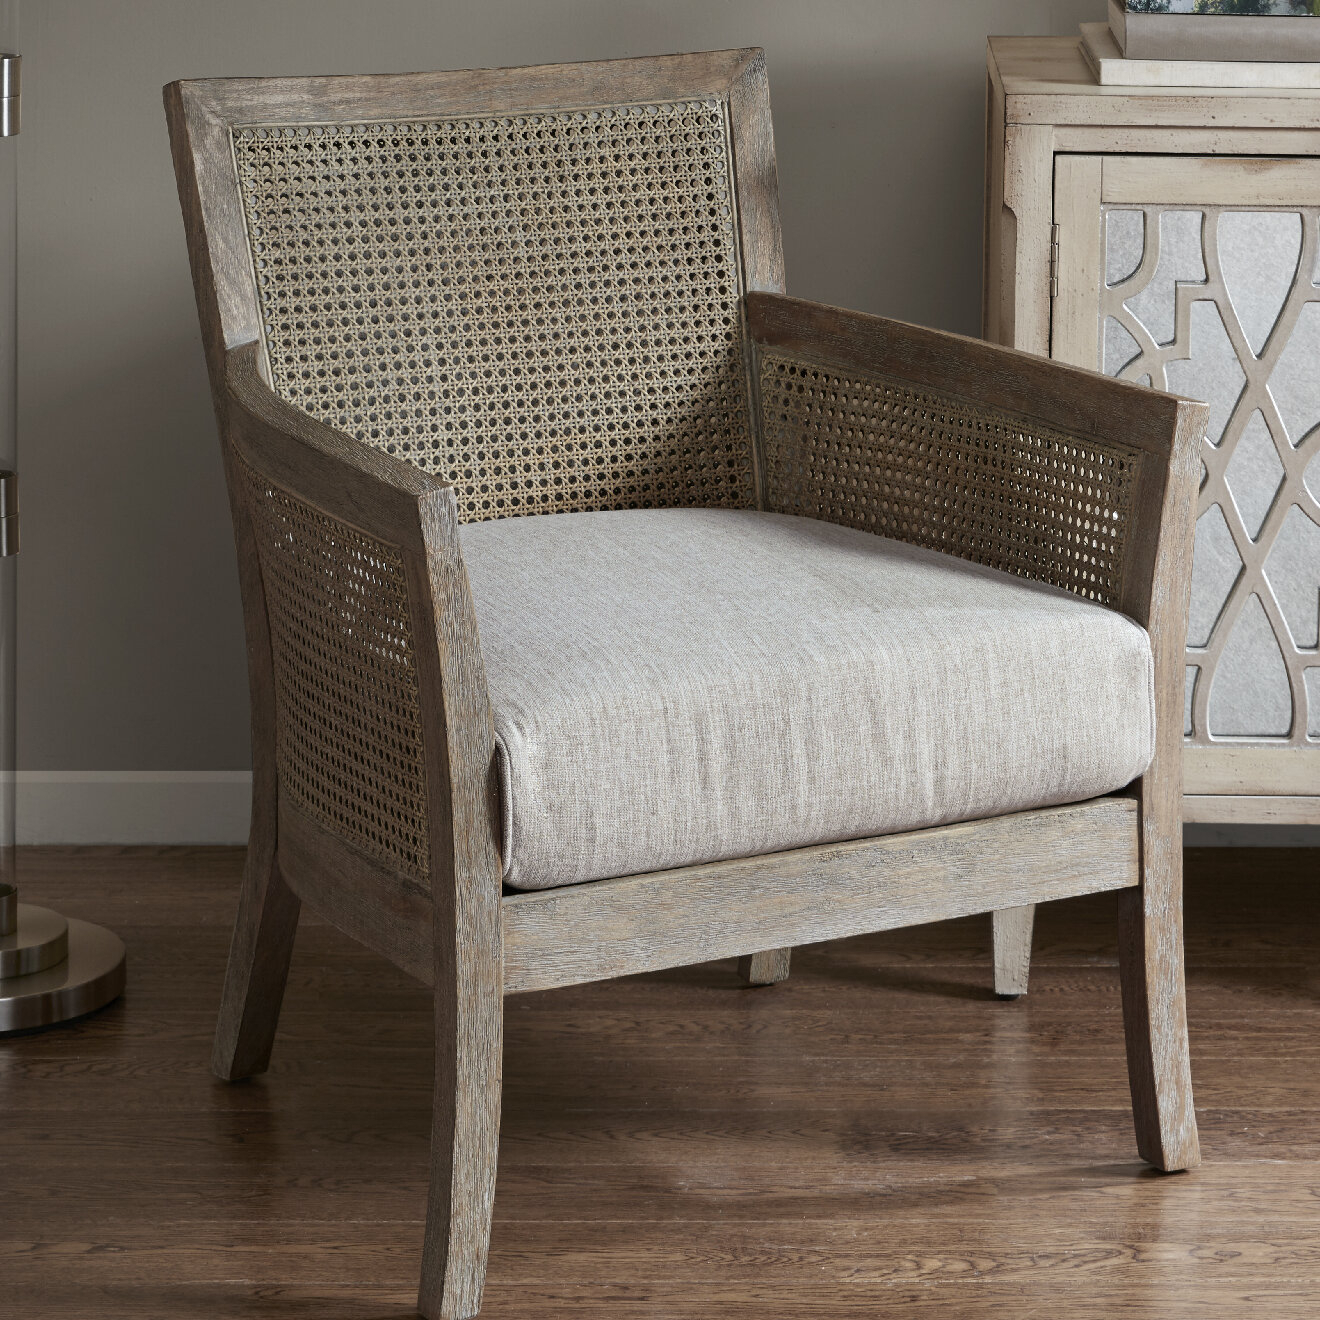 "Edgemoor 28"" W Polyester Blend Armchair Within Polyester Blend Armchairs (View 7 of 15)"